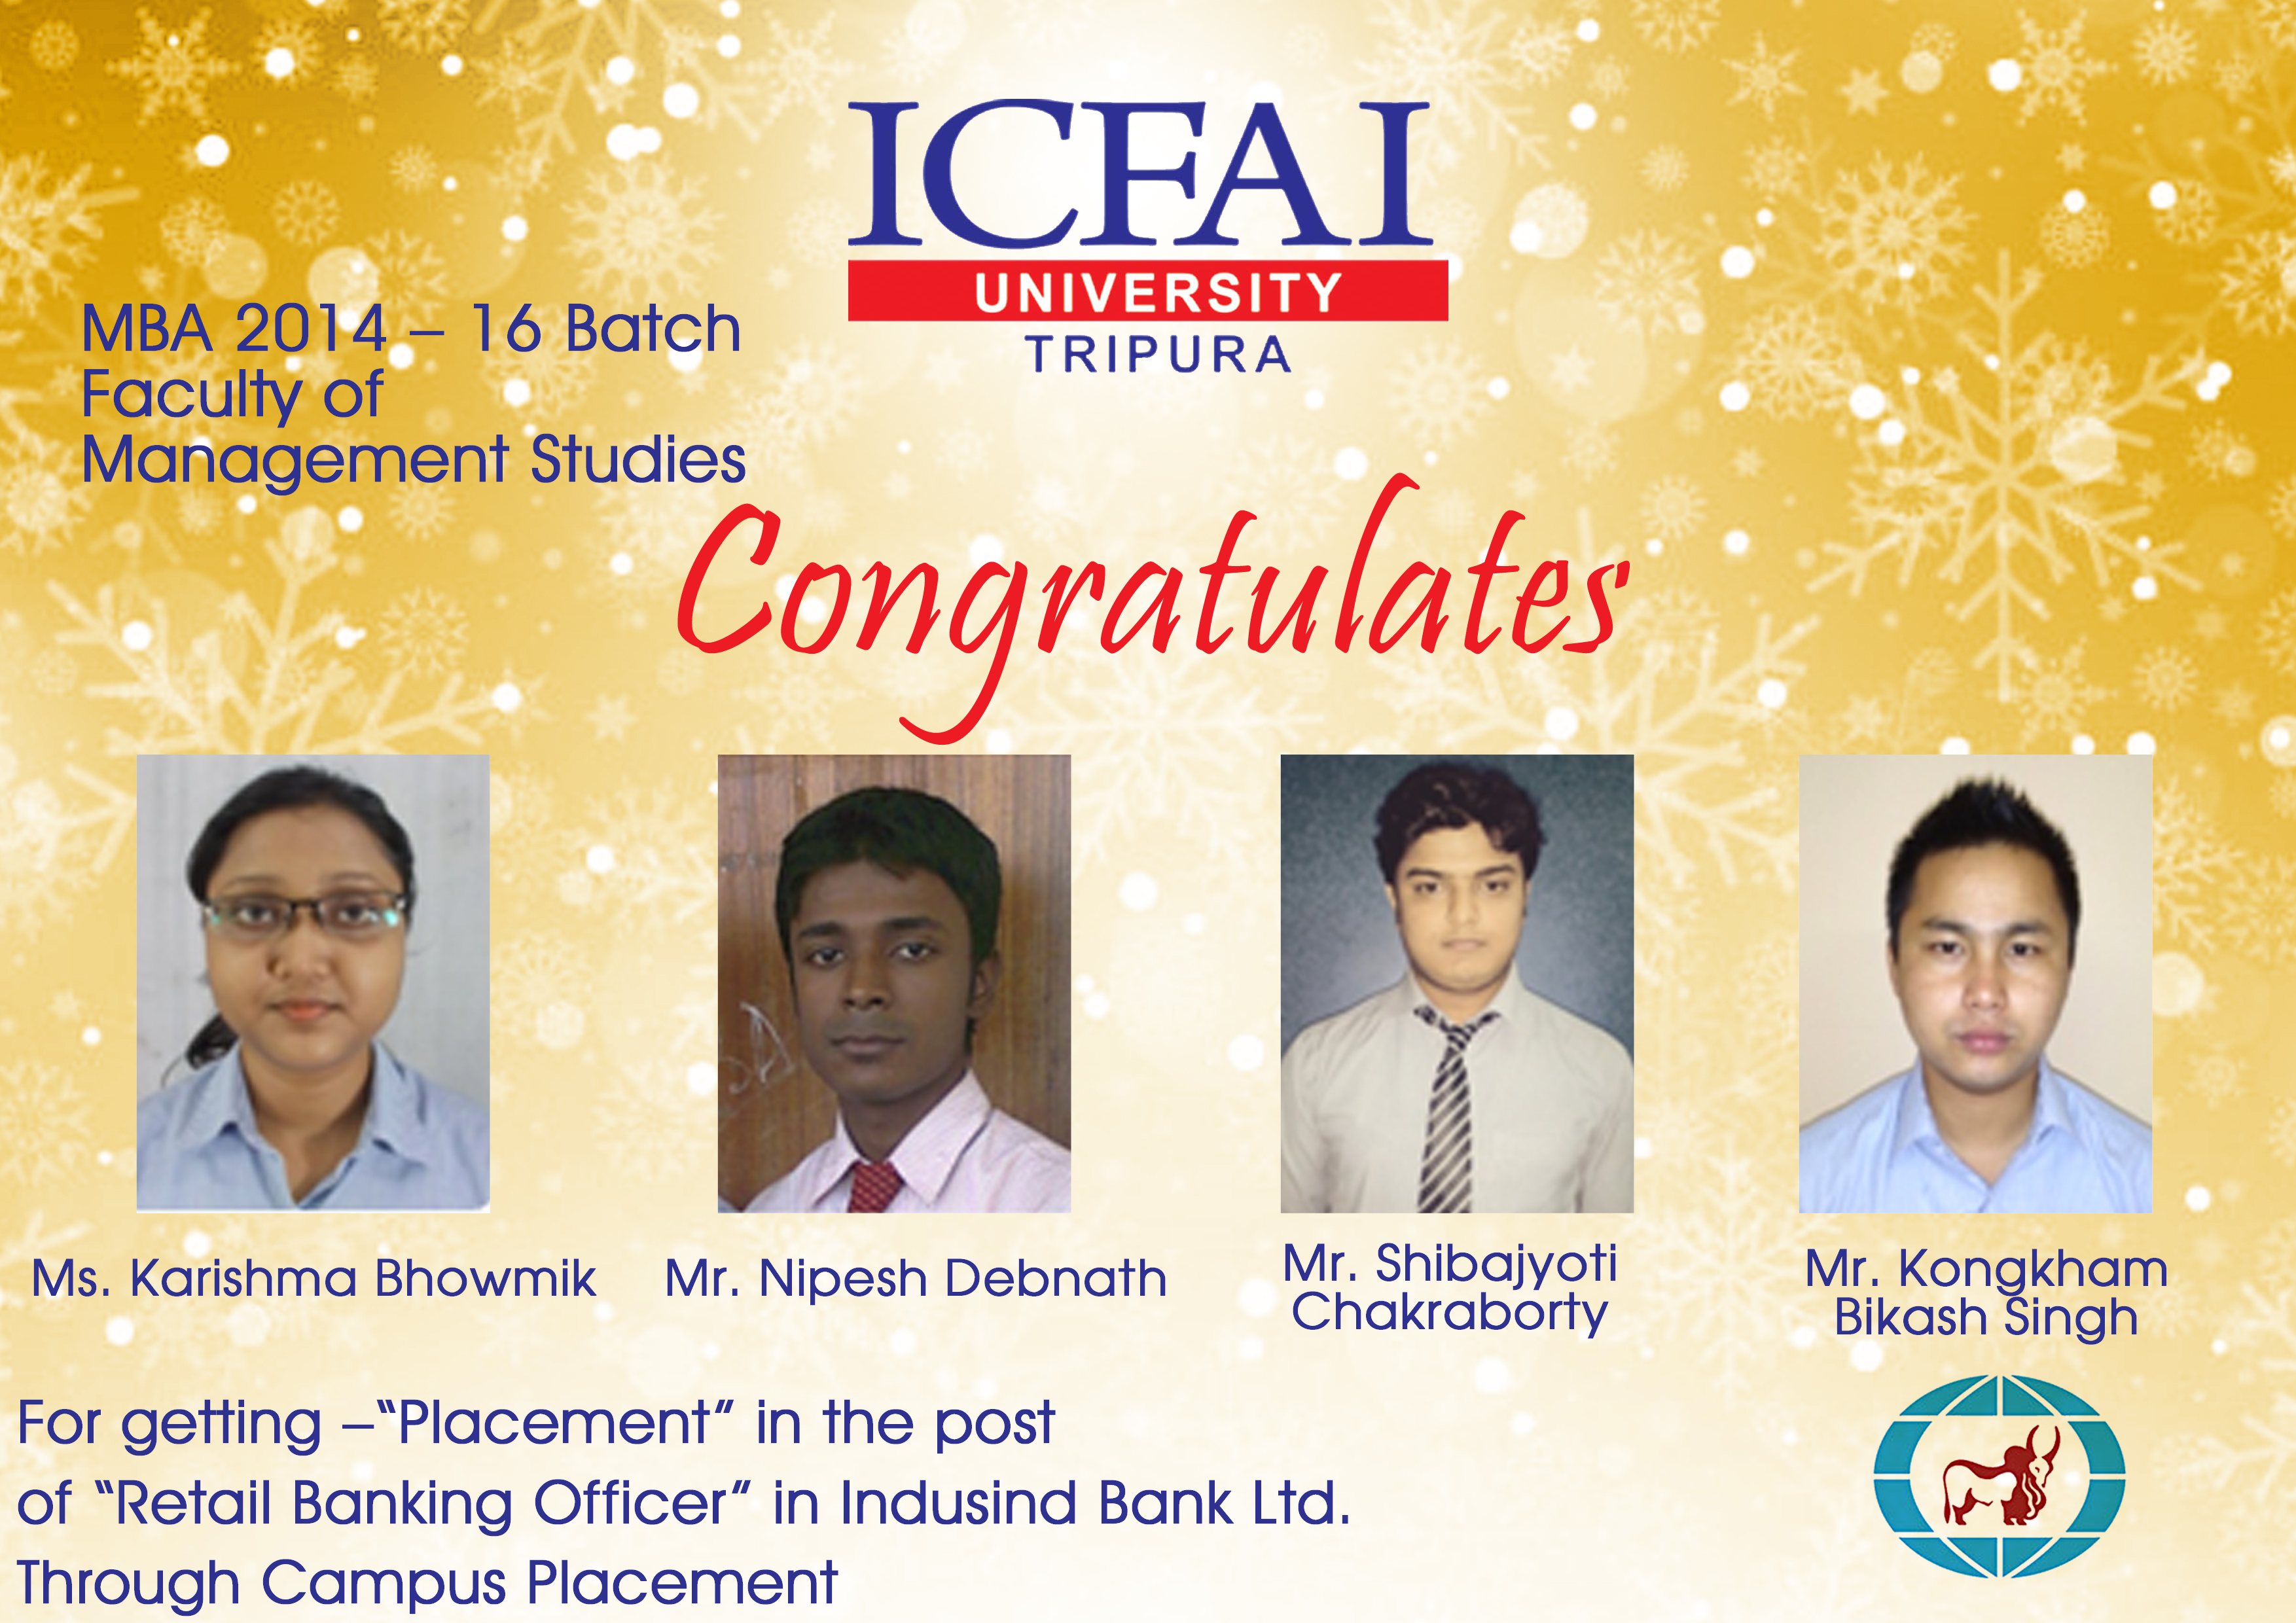 Placements | The ICFAI University Tripura | Full-time Campus